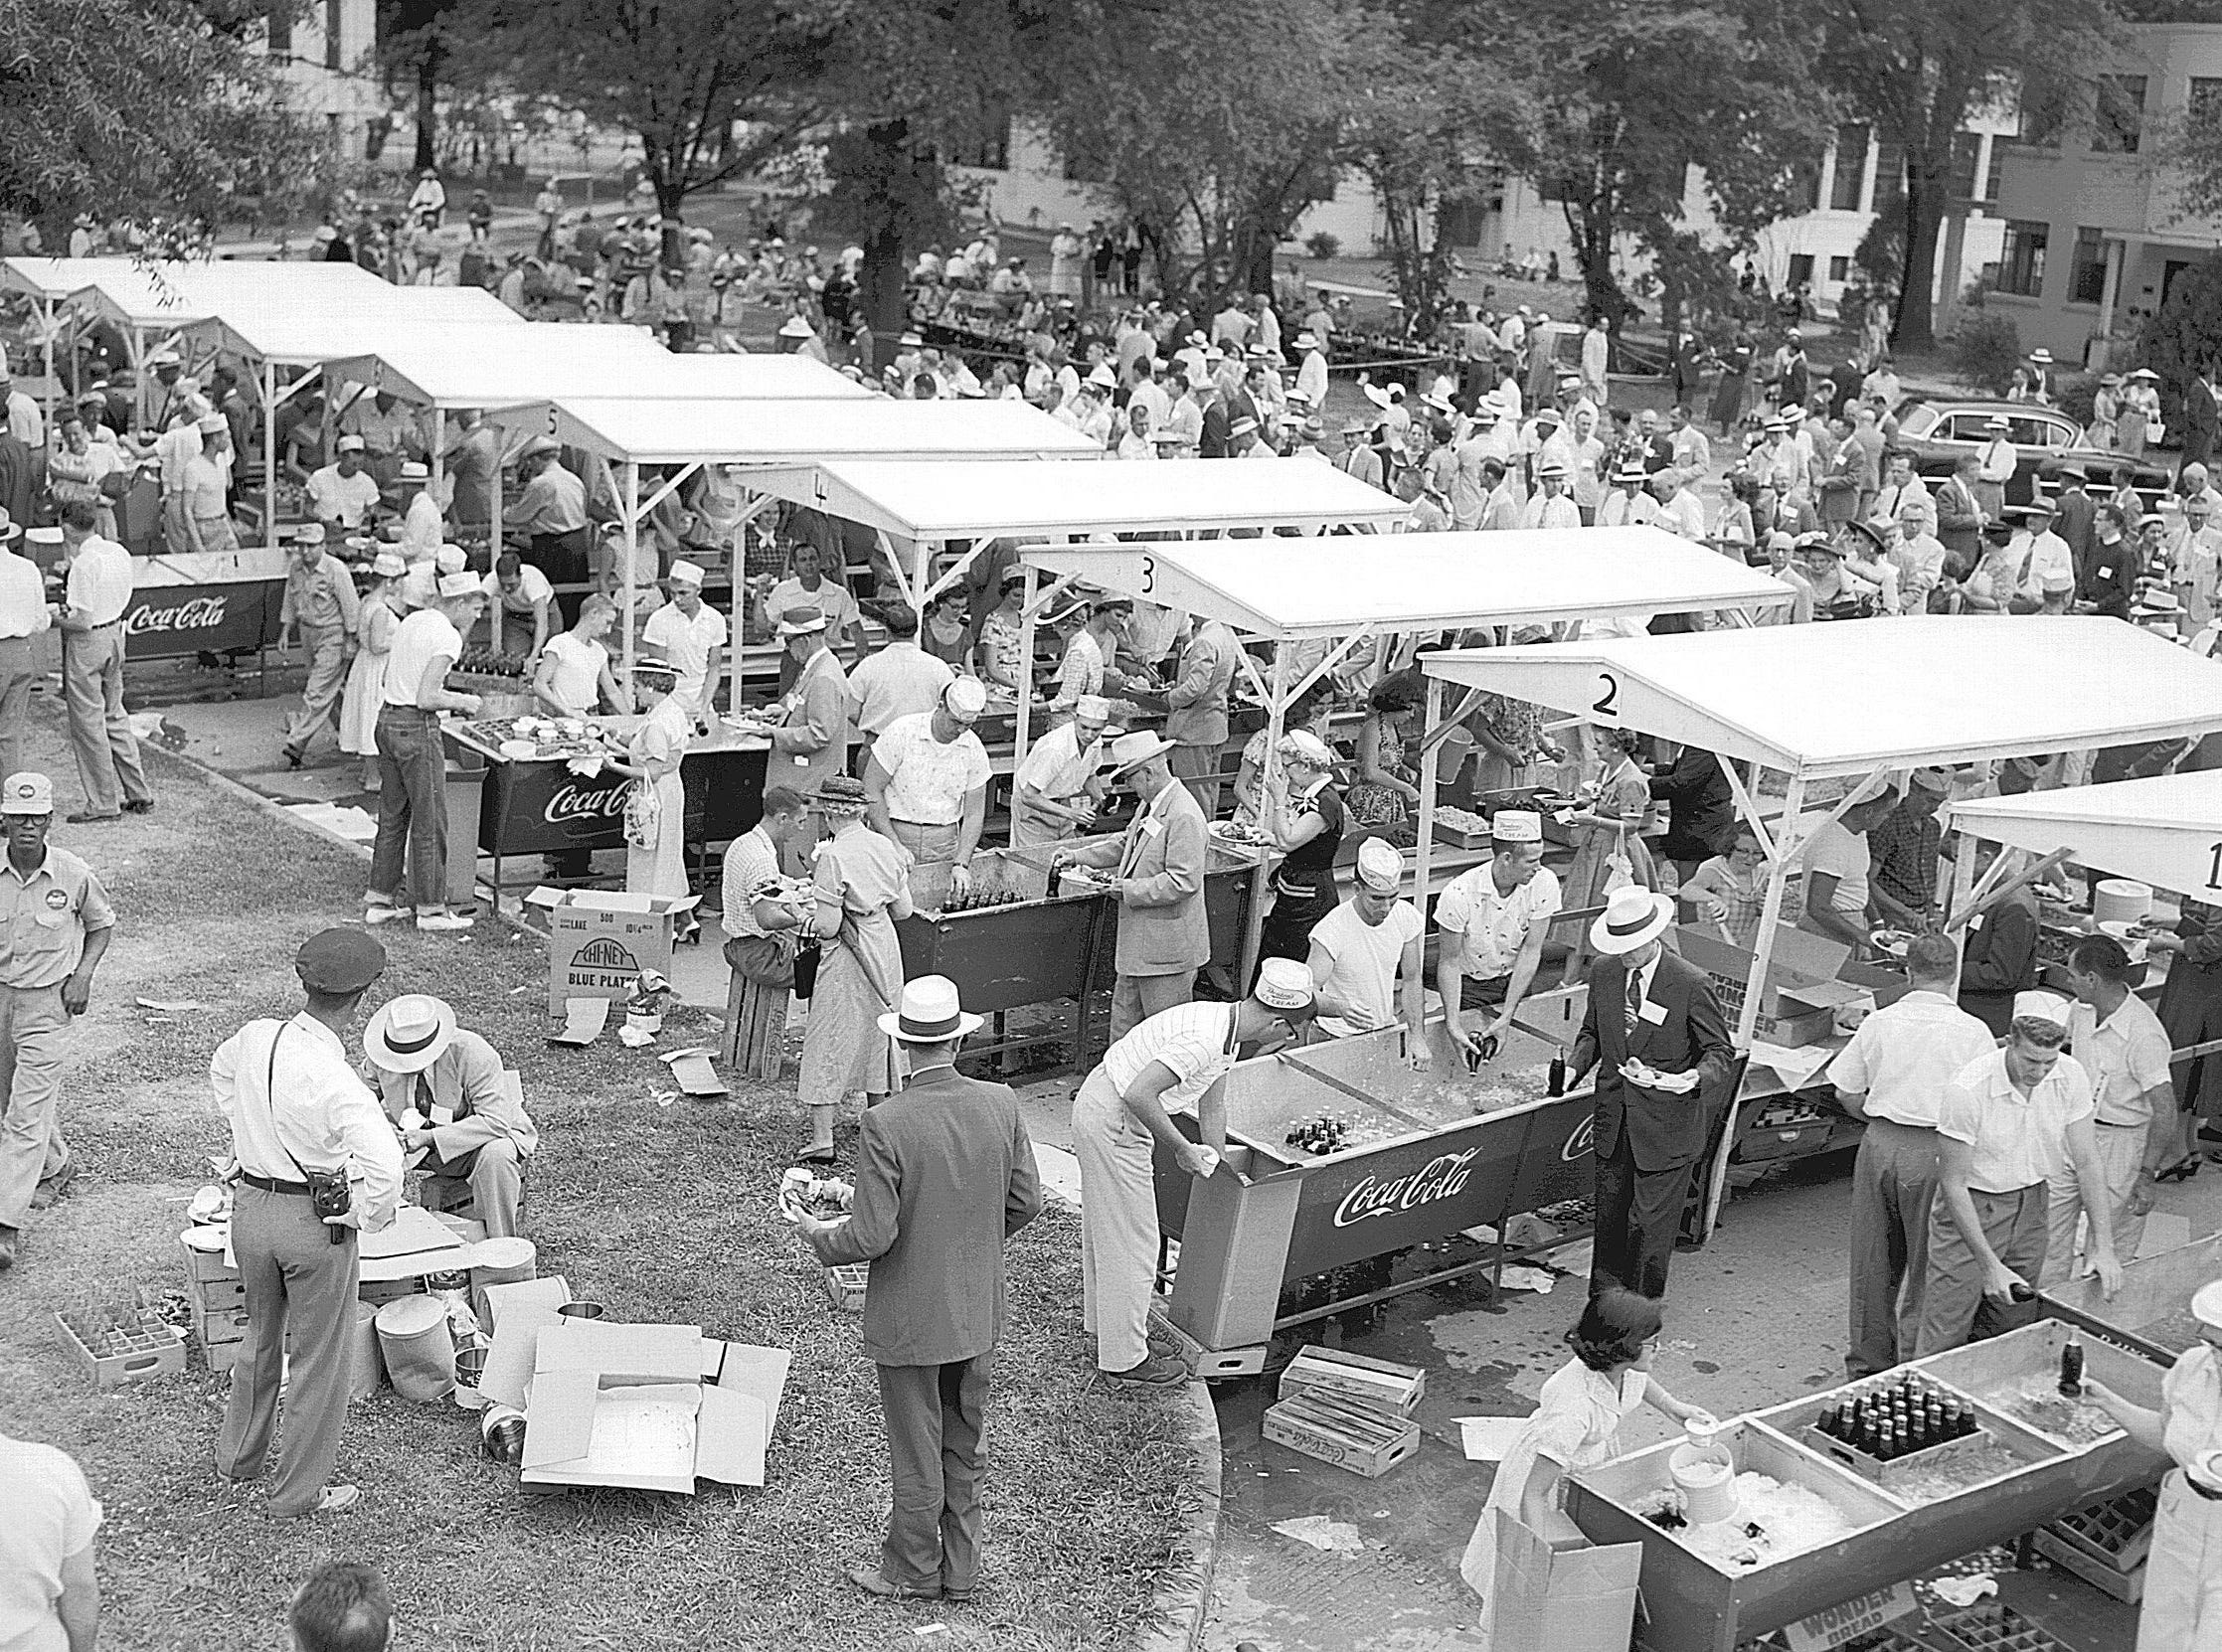 Soft drinks and barbecued chicken were on the lunch menu at the Delta Council meeting at Delta State College in Cleveland, Miss., on 12 May 1955. Approximately 5,000 people turned out for the annual event.